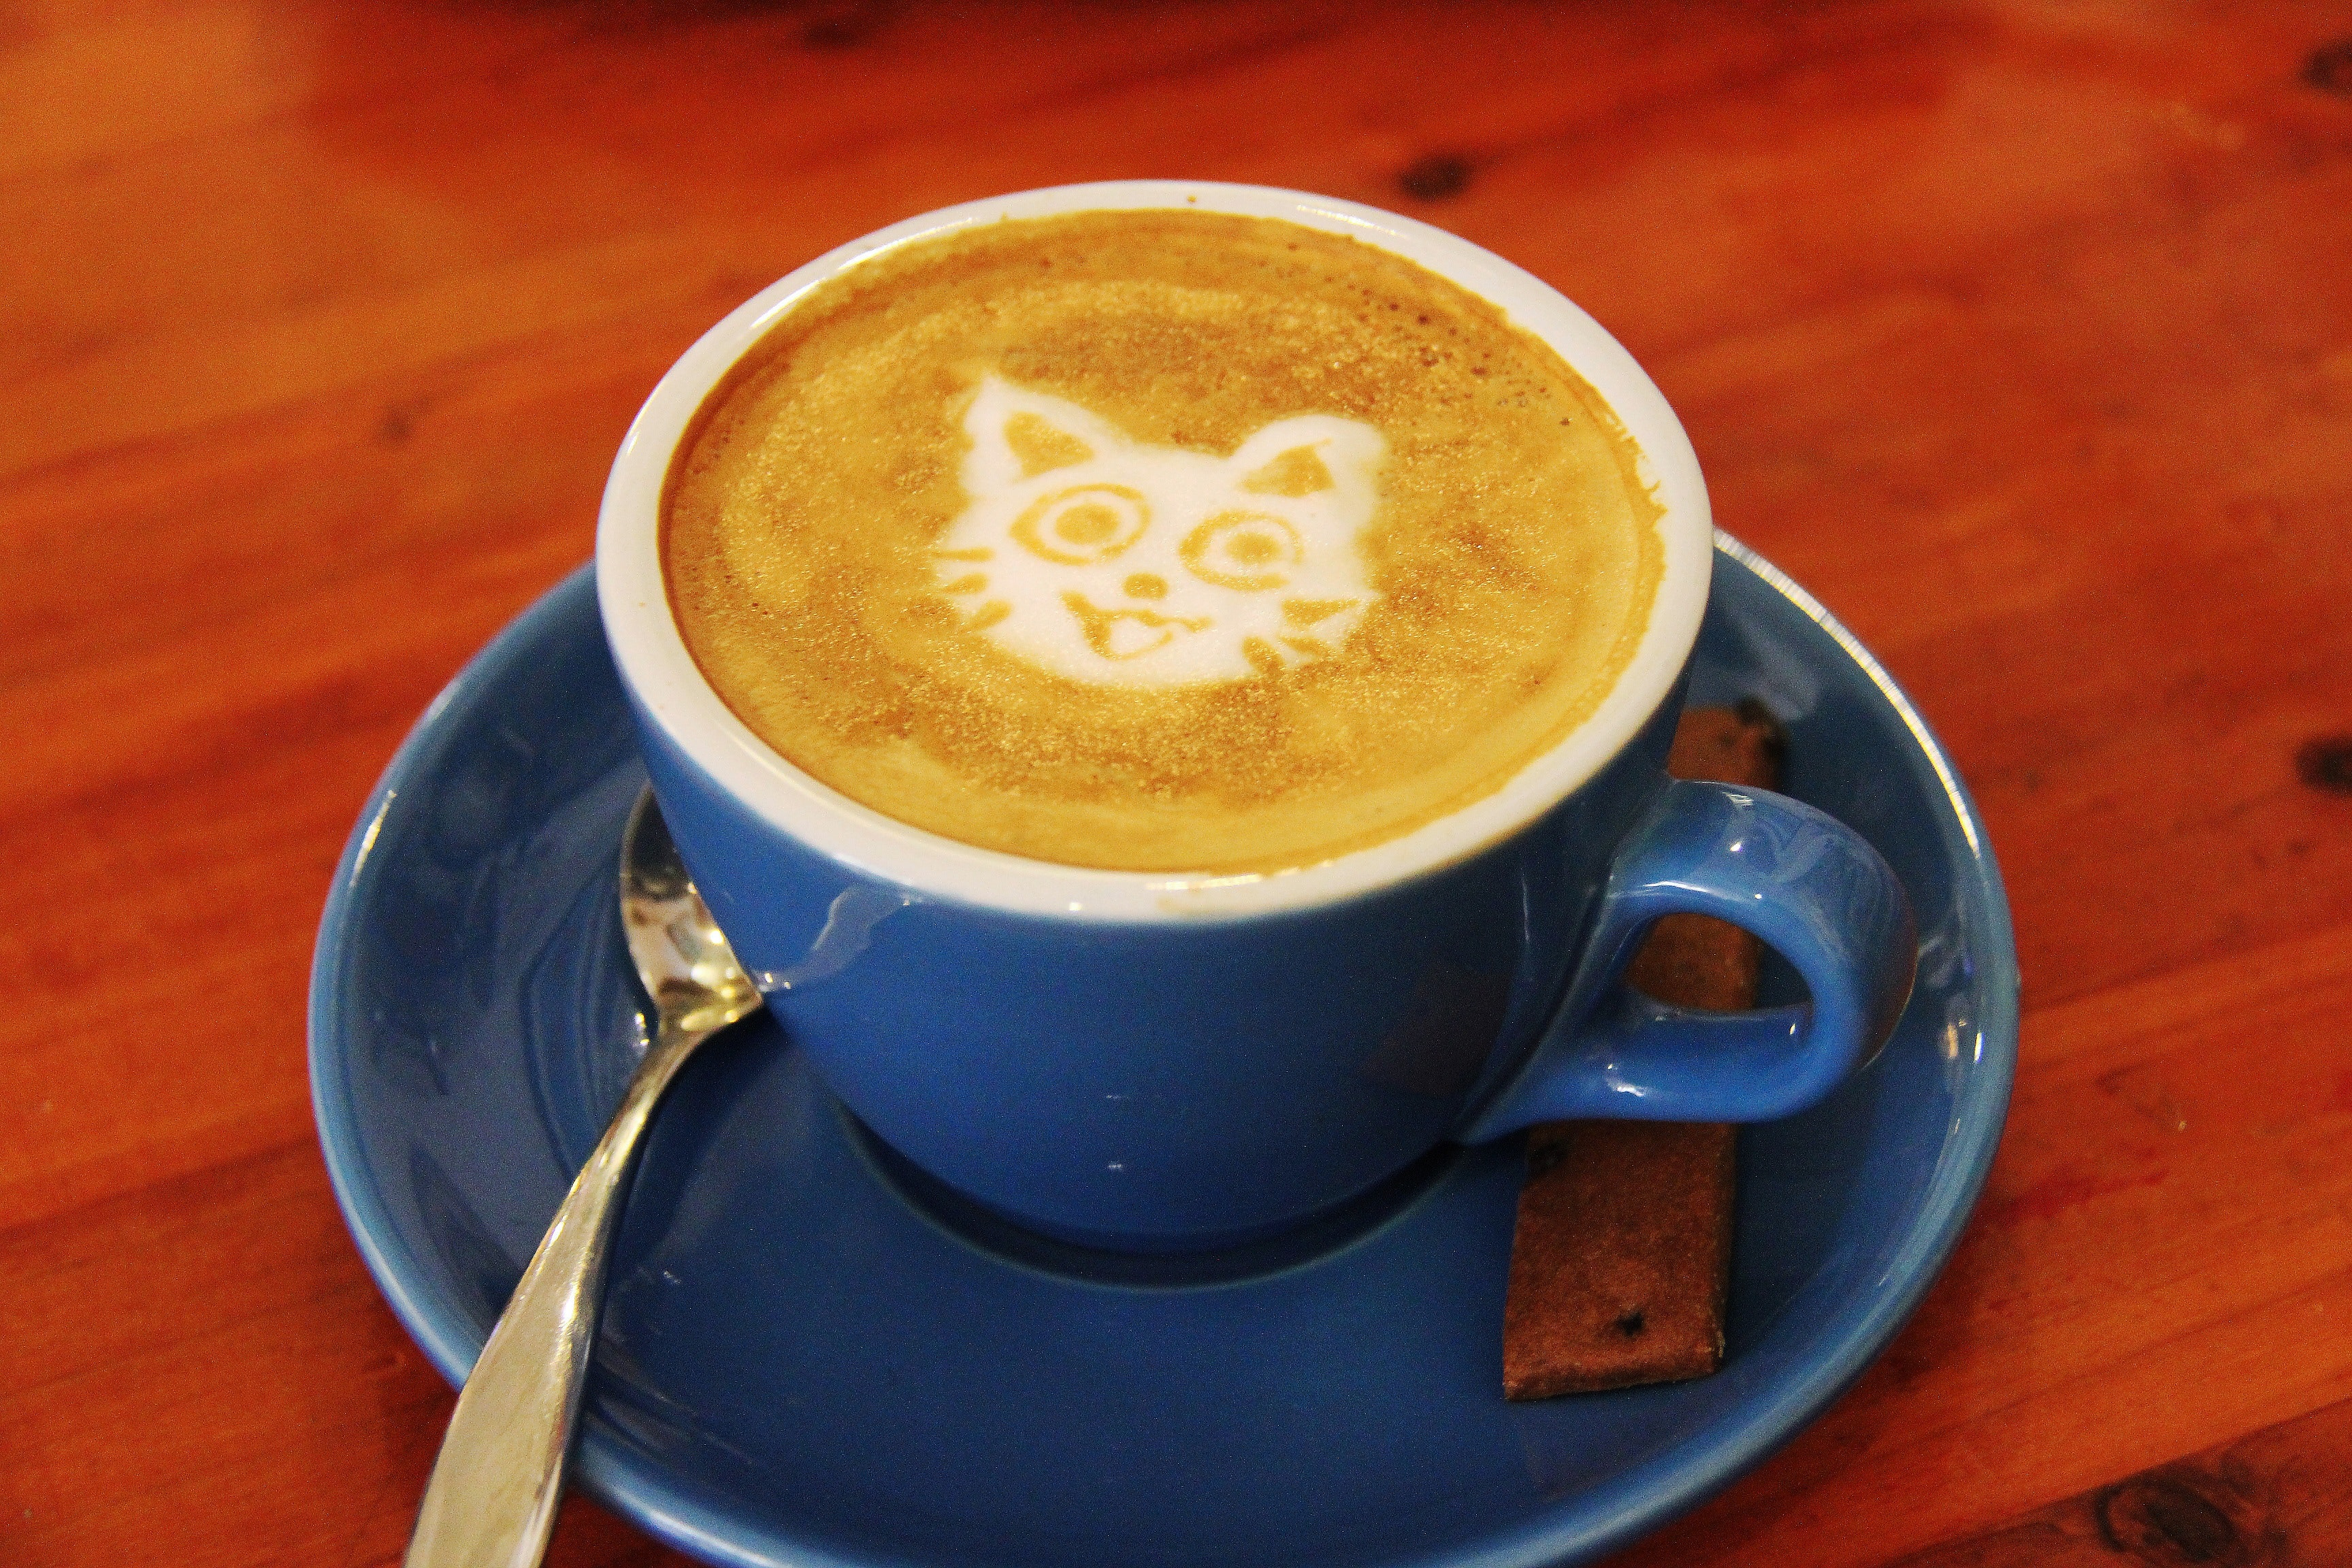 Does your purrfect day involve cats and coffee?